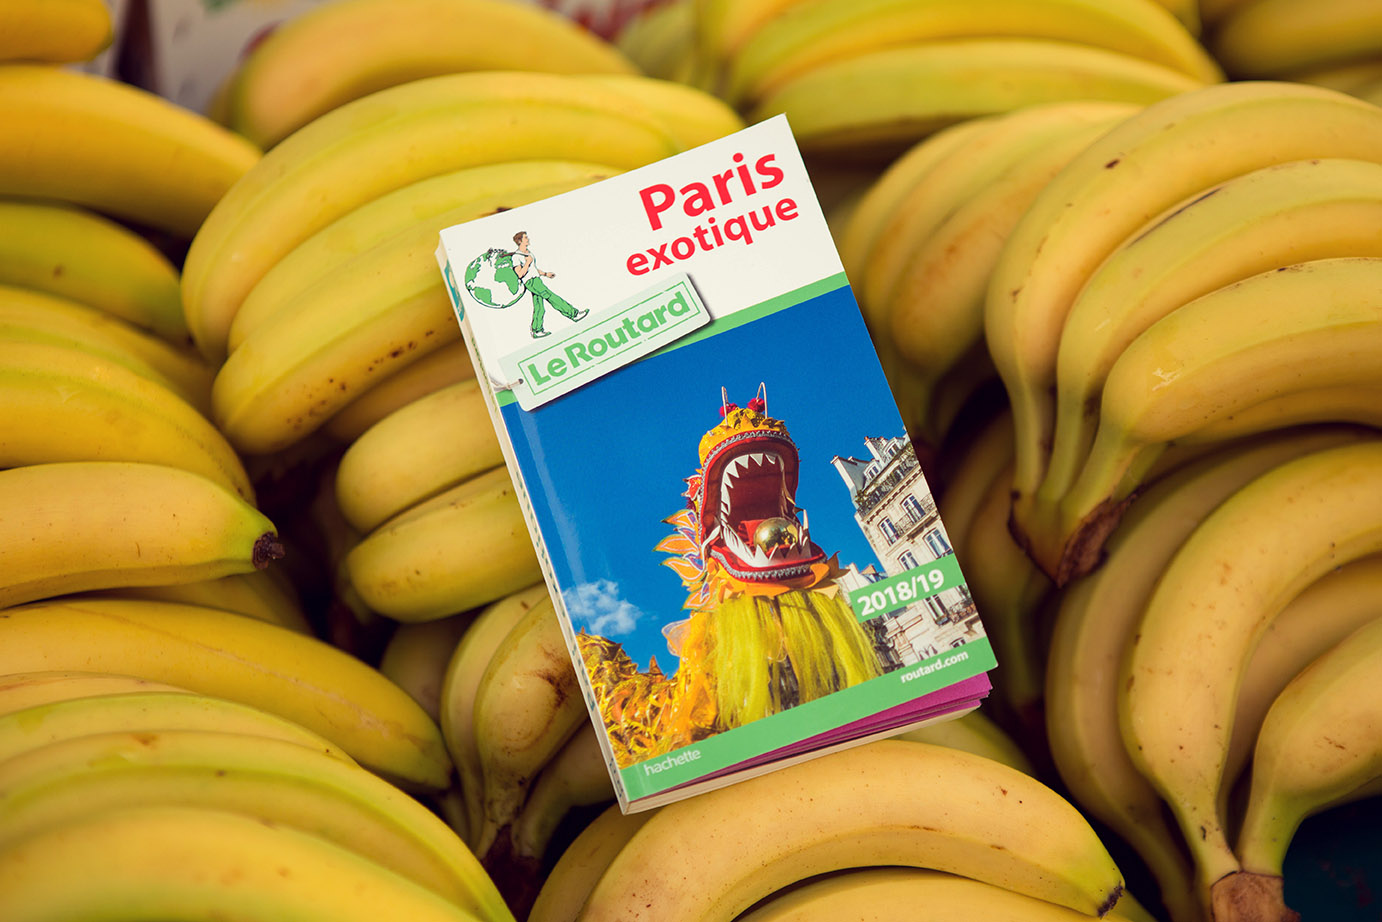 Routard: Paris Exotique